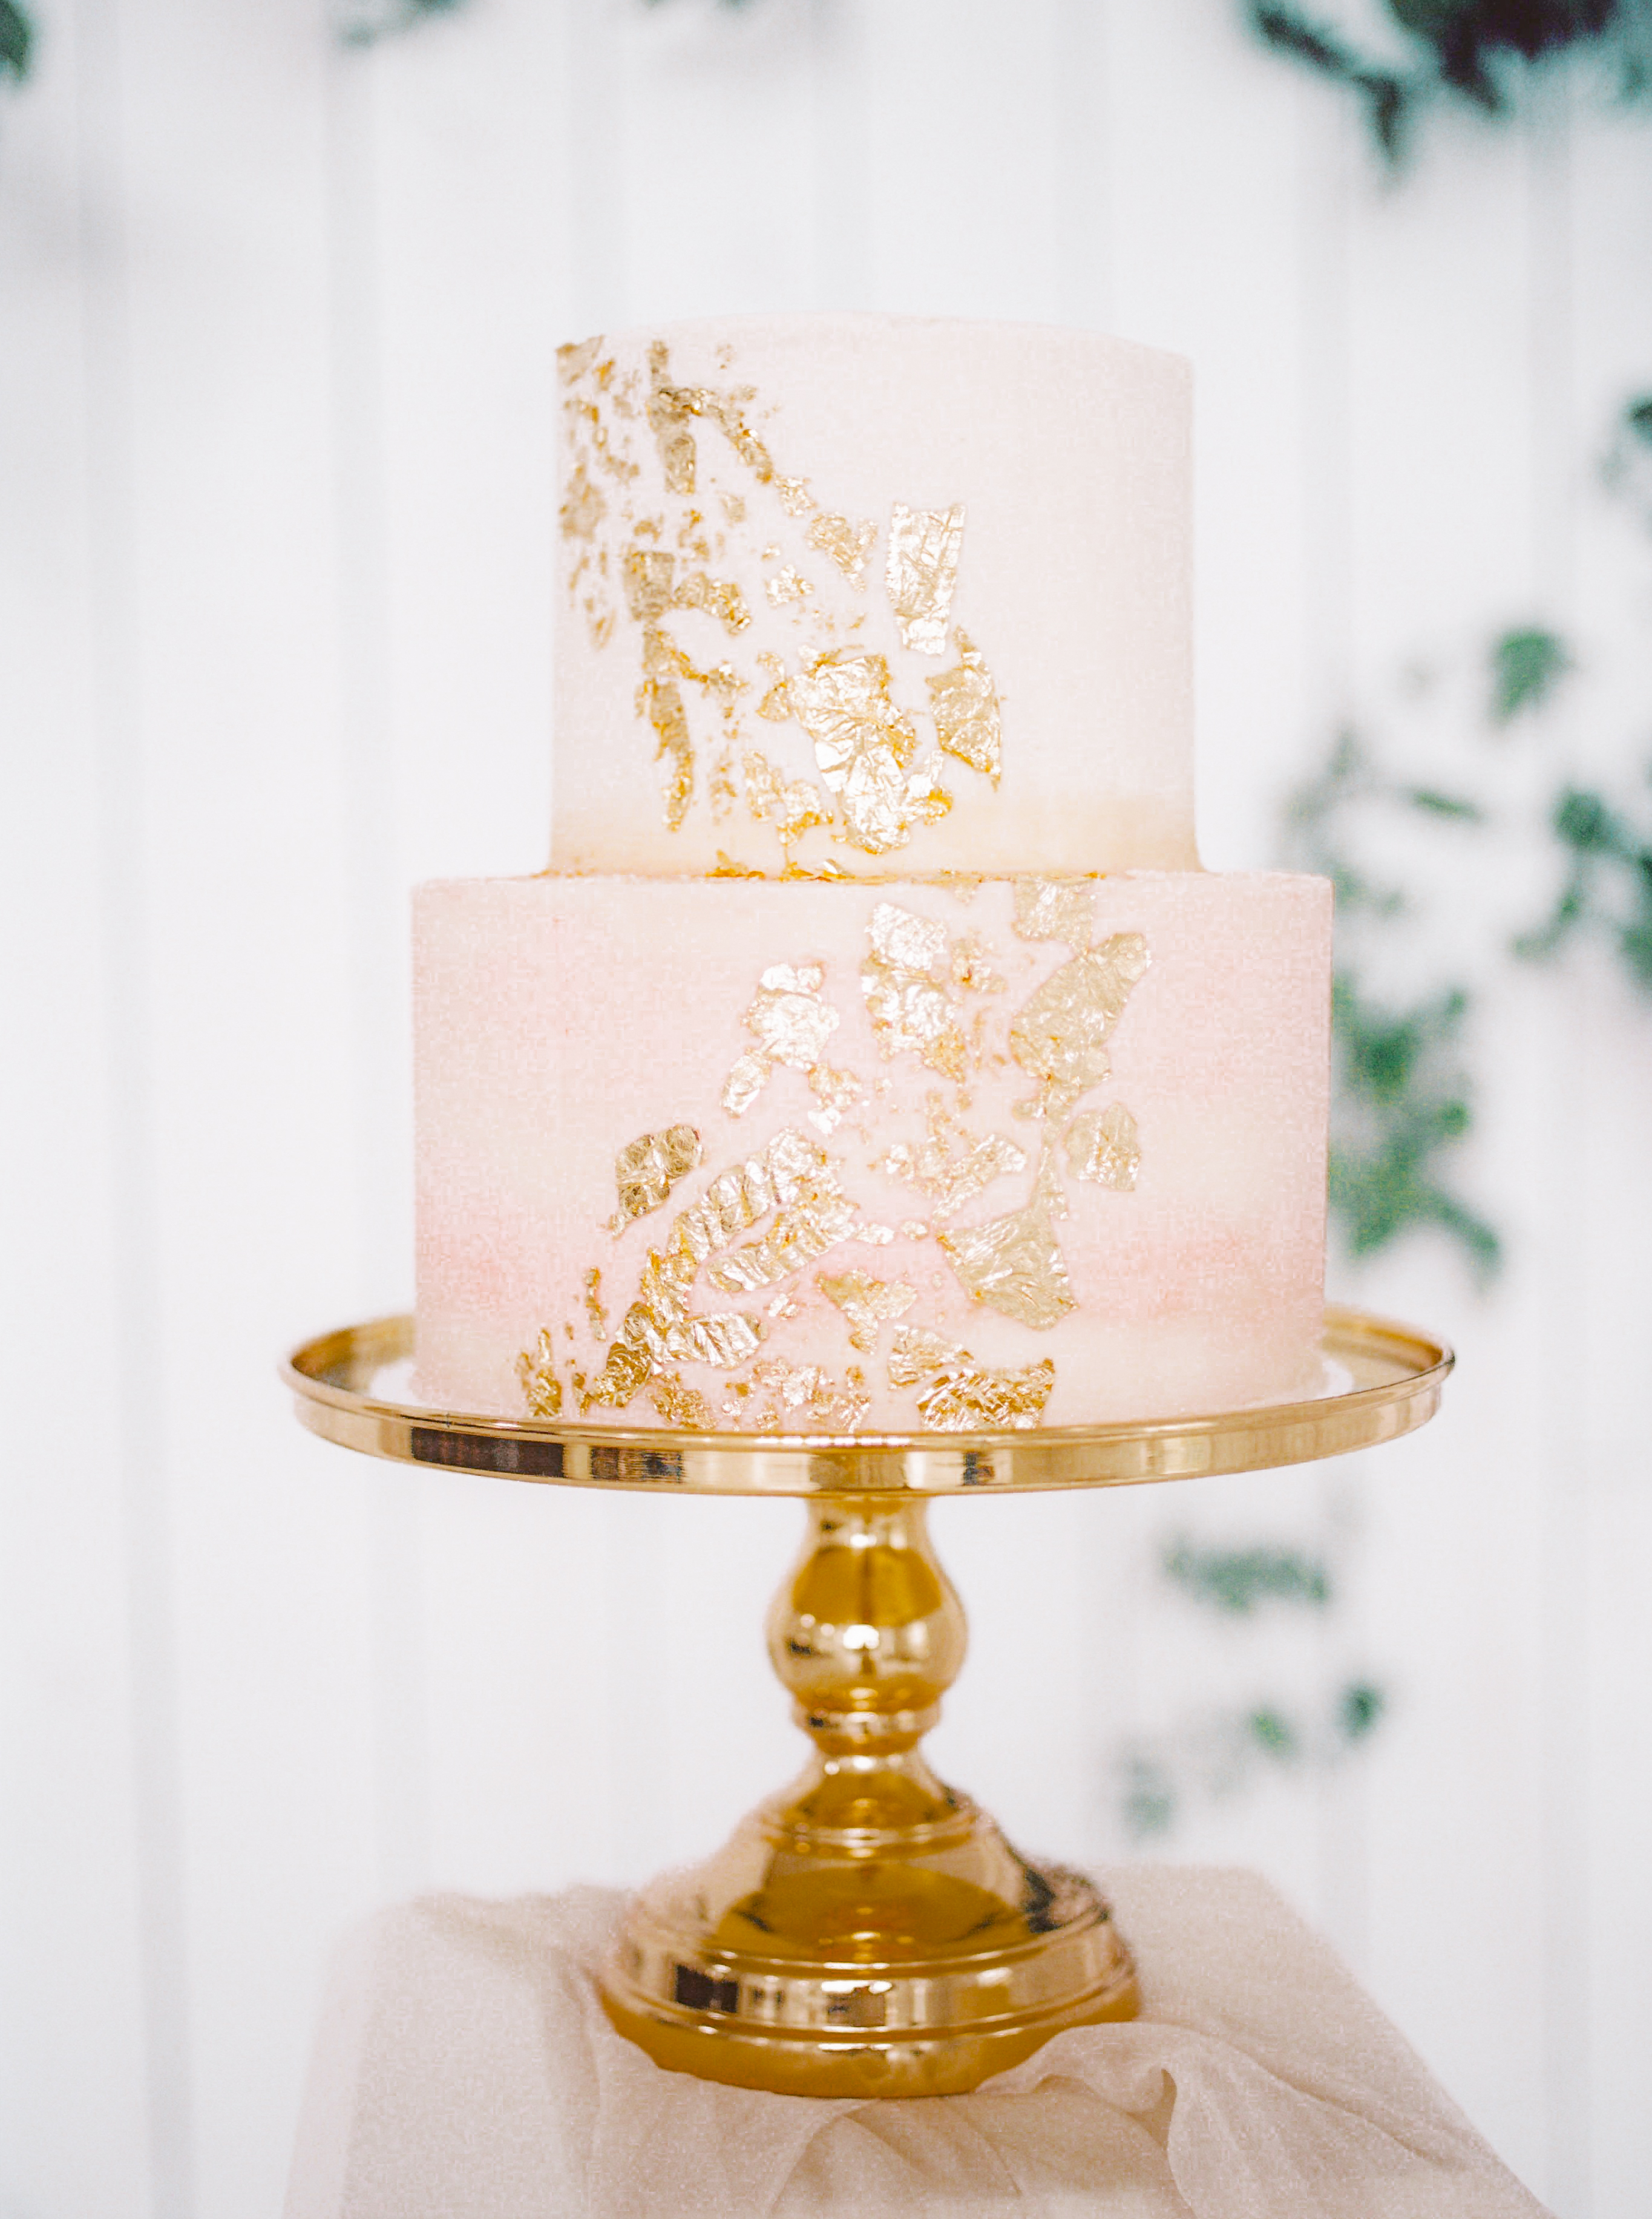 2-tier cake with gold leaf decoration